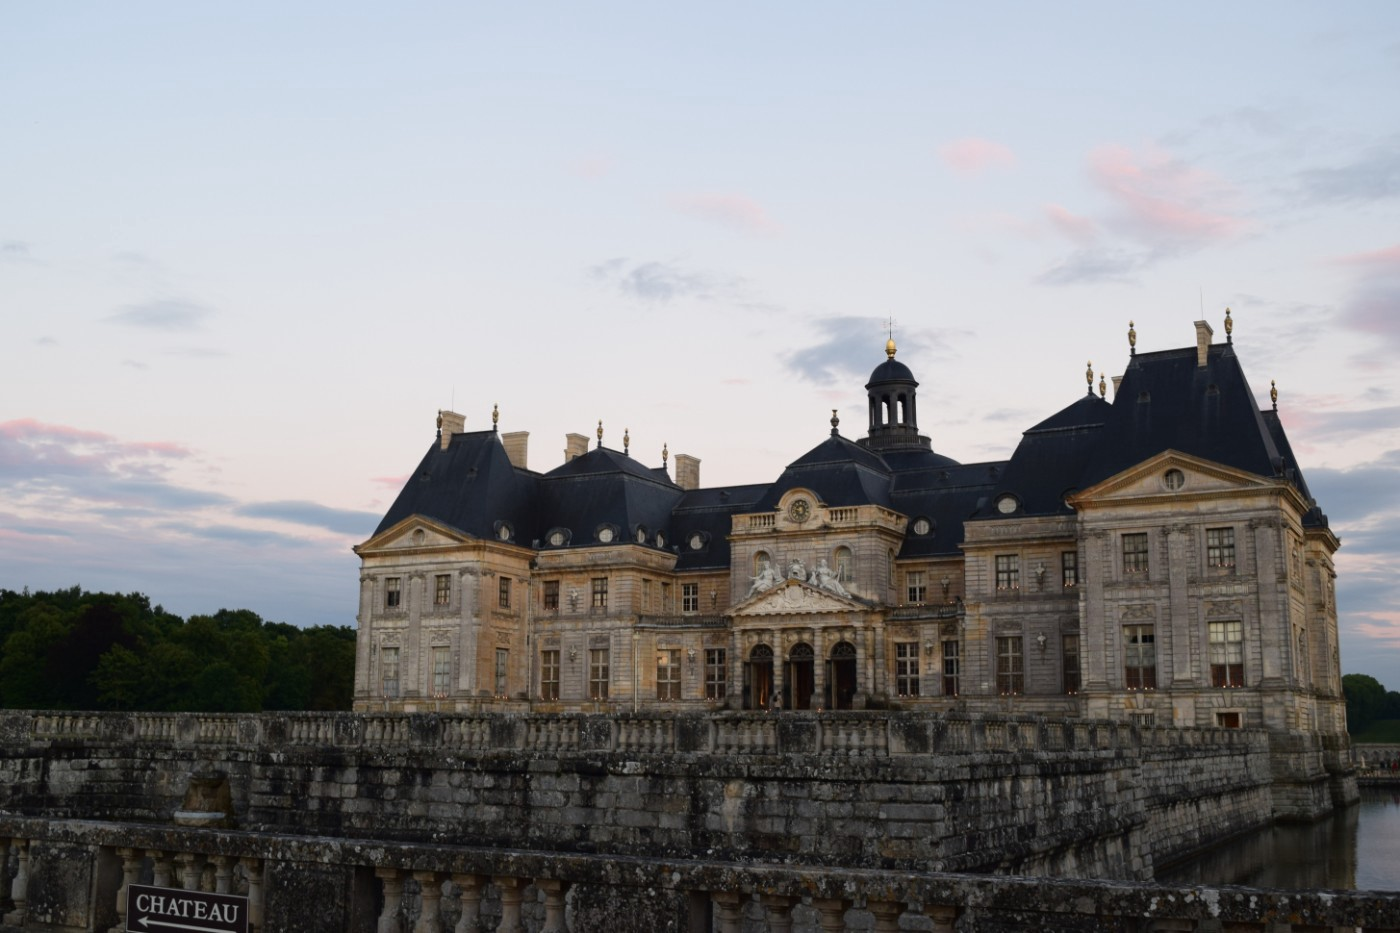 A summer evening at the Château de Vaux-le-Vicomte, seen here with its moat.